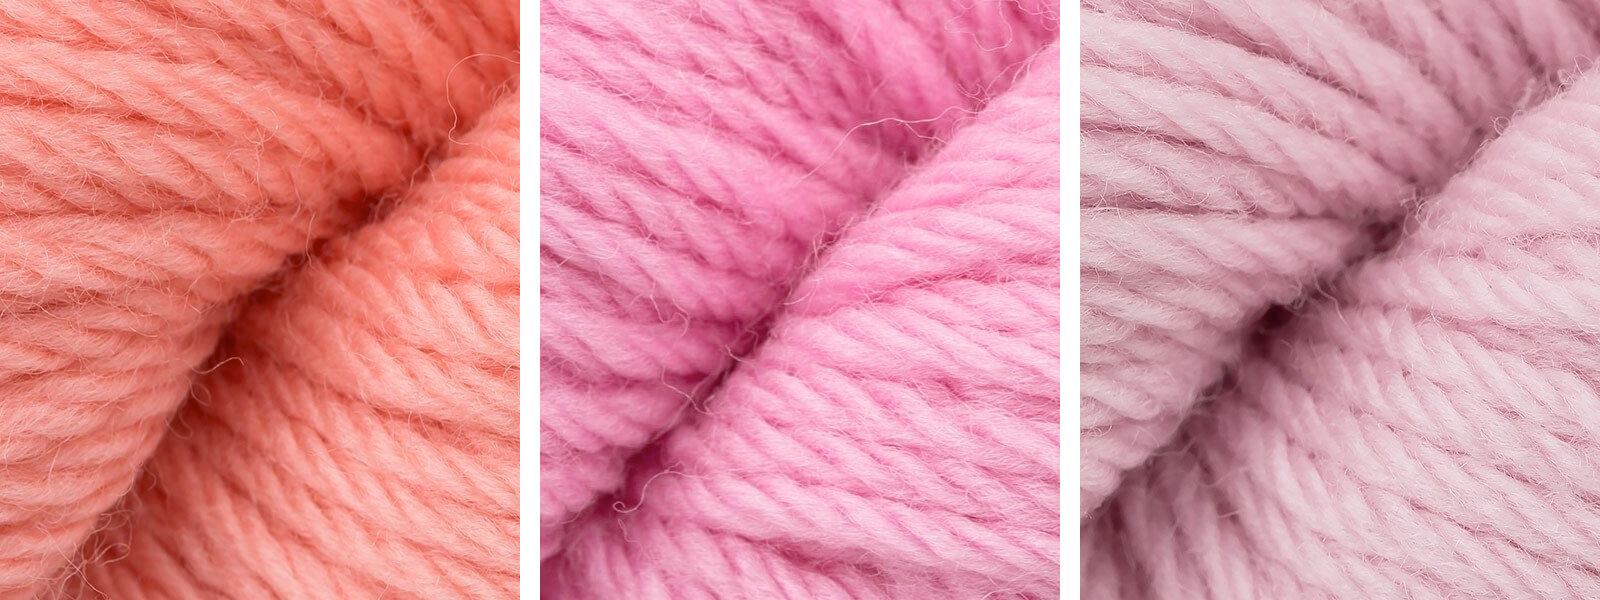 Cascade 220 superwash sport is a 100% merino yarn that exemplifies the yarn weight fine, also known as sport or baby.